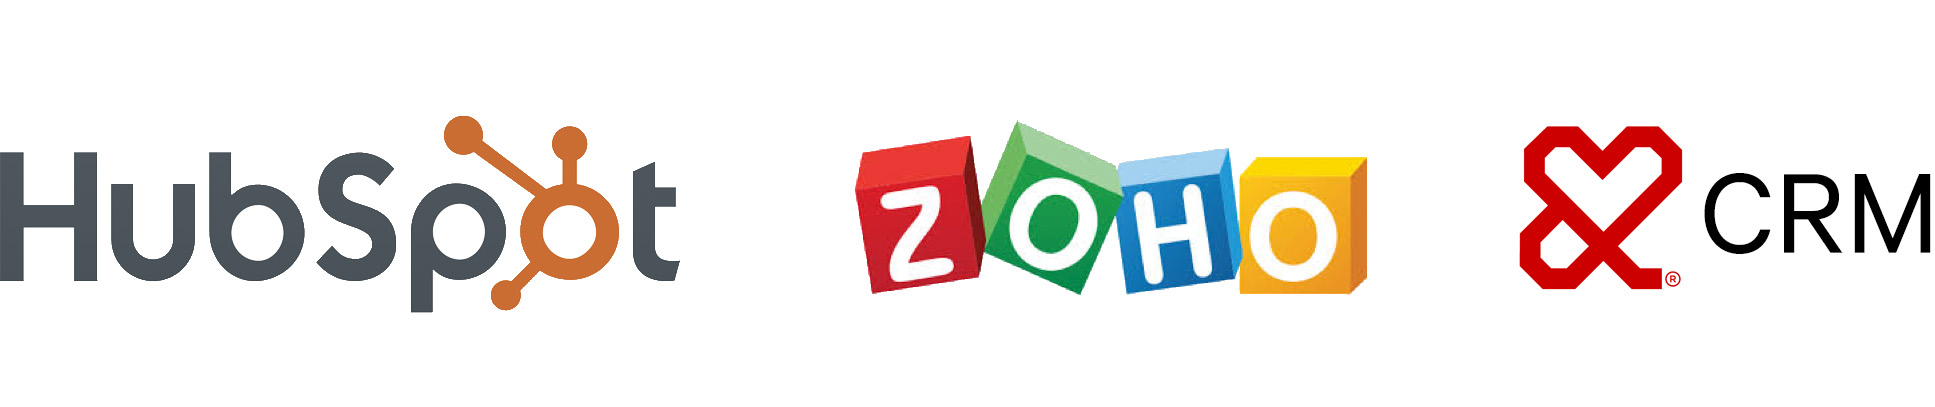 Hubspot Zoho AndMine CRM